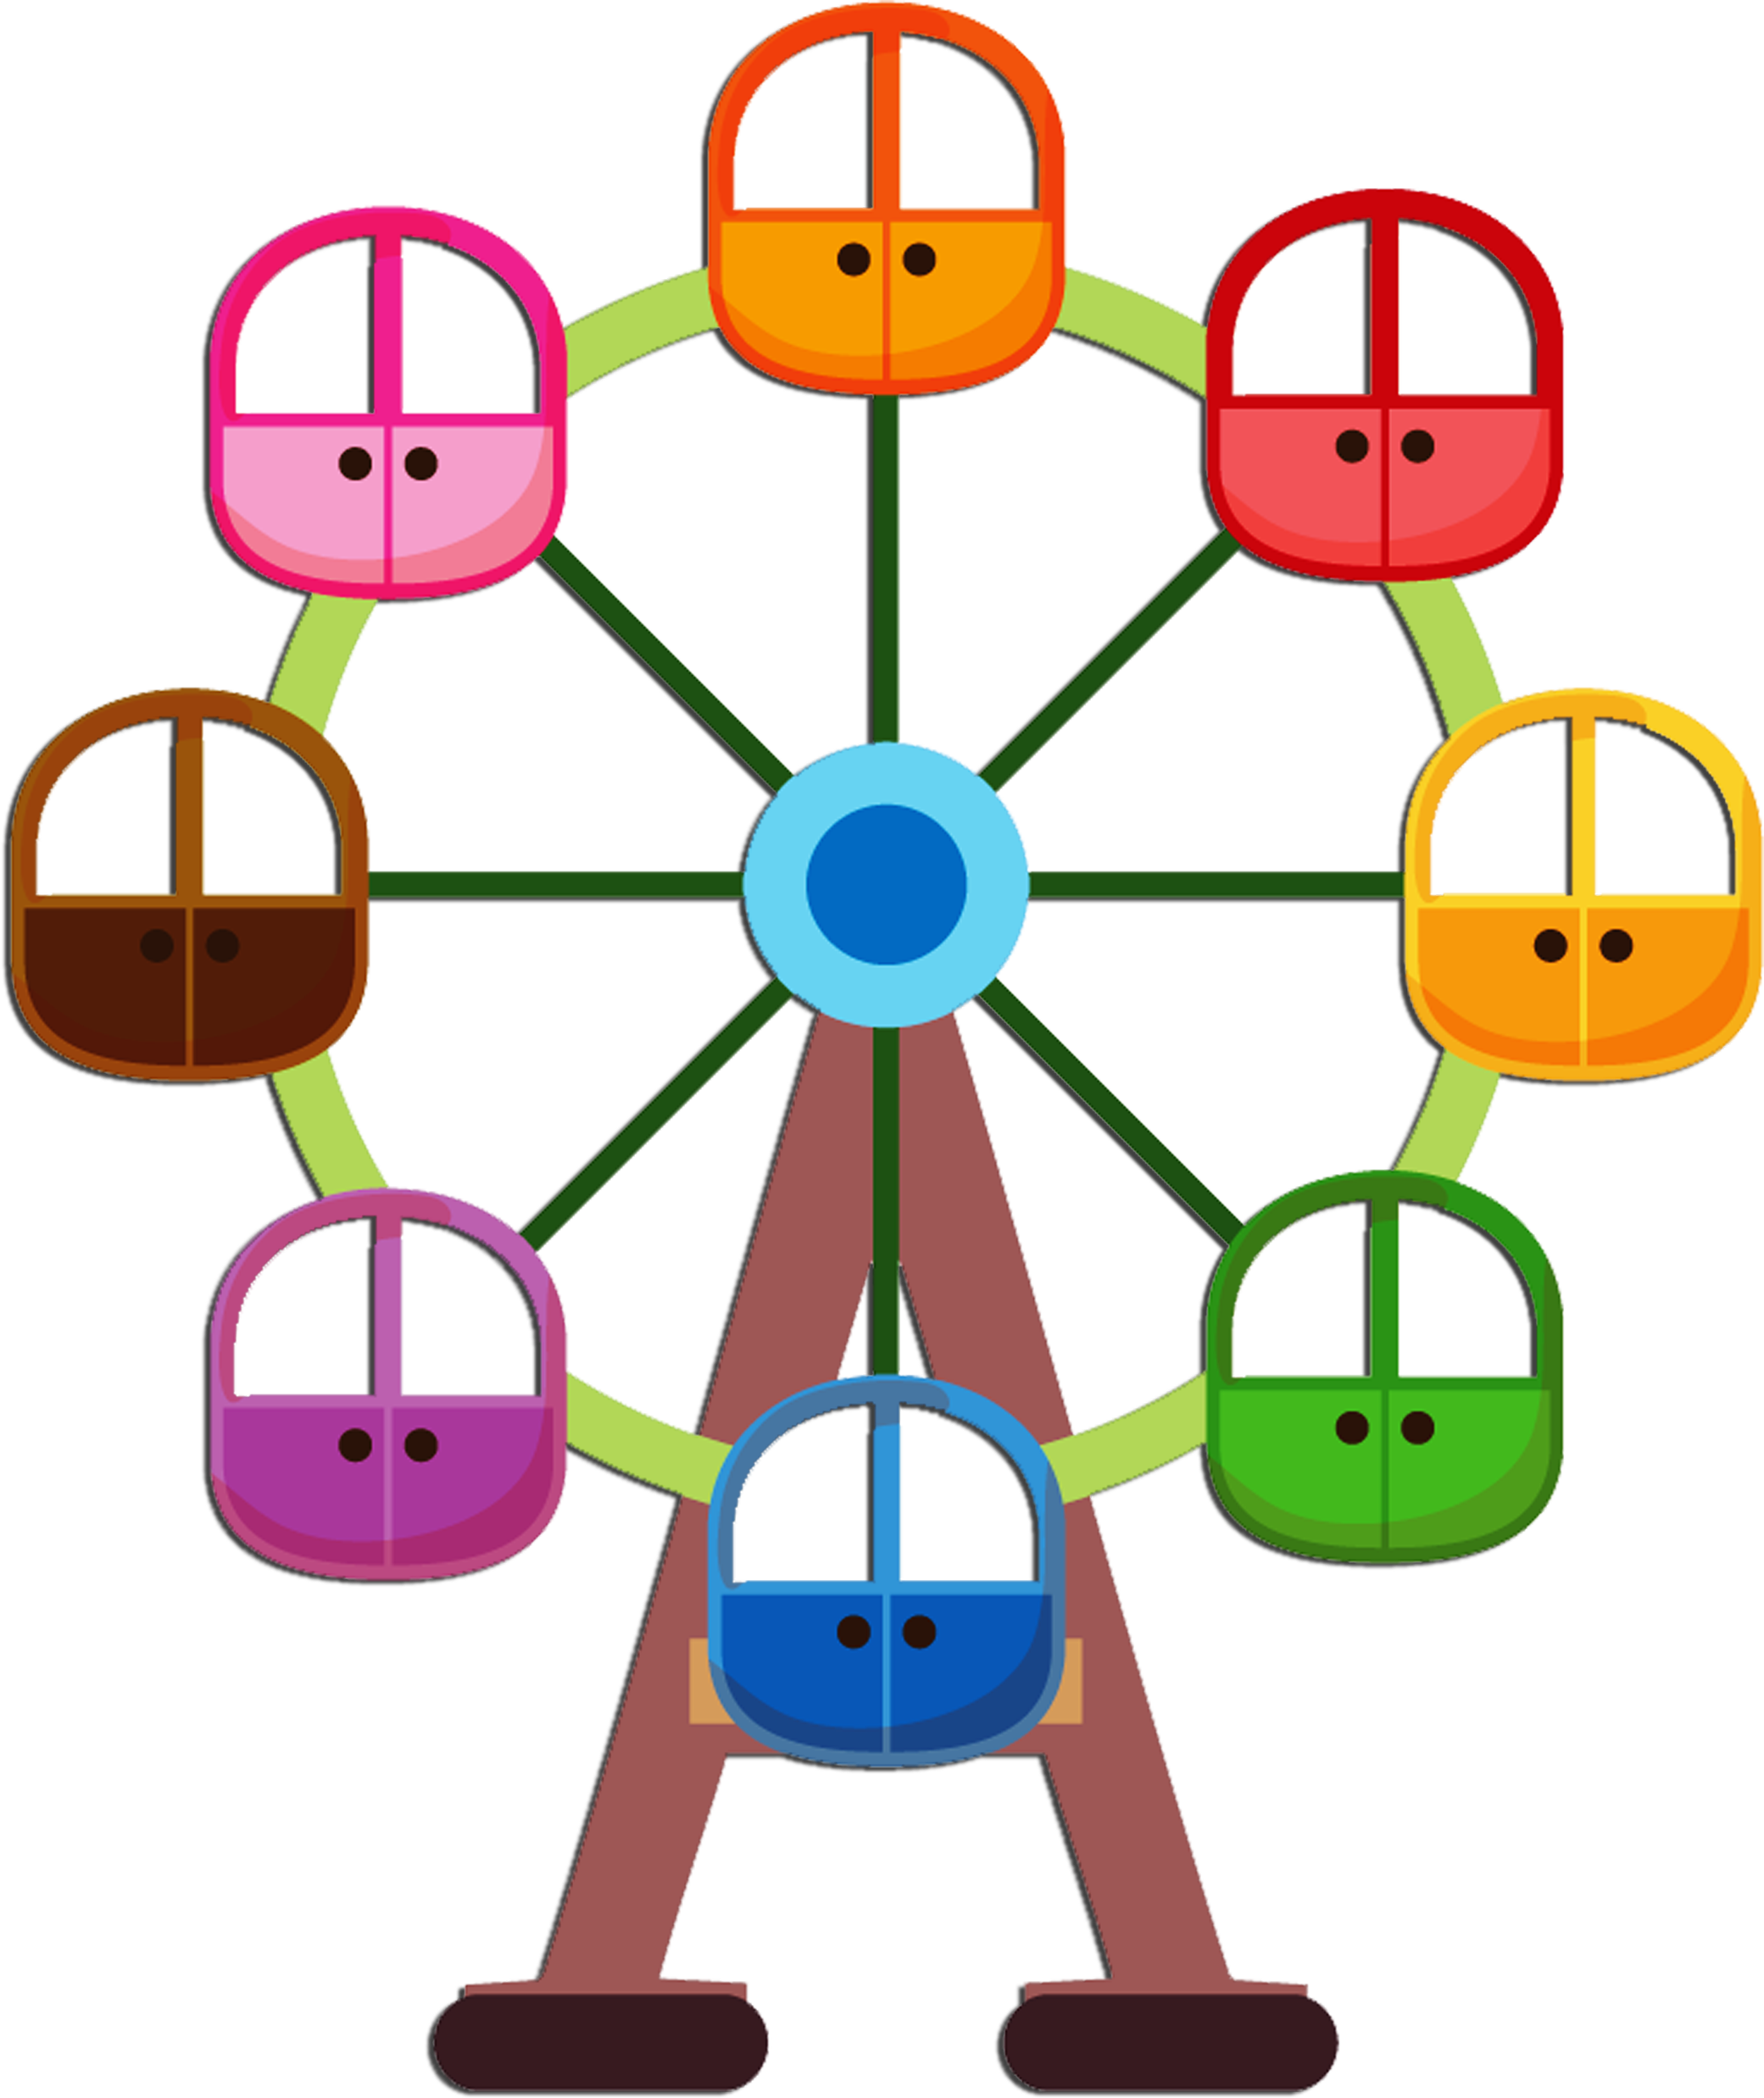 Wheel clipart cute. Circo palha o e